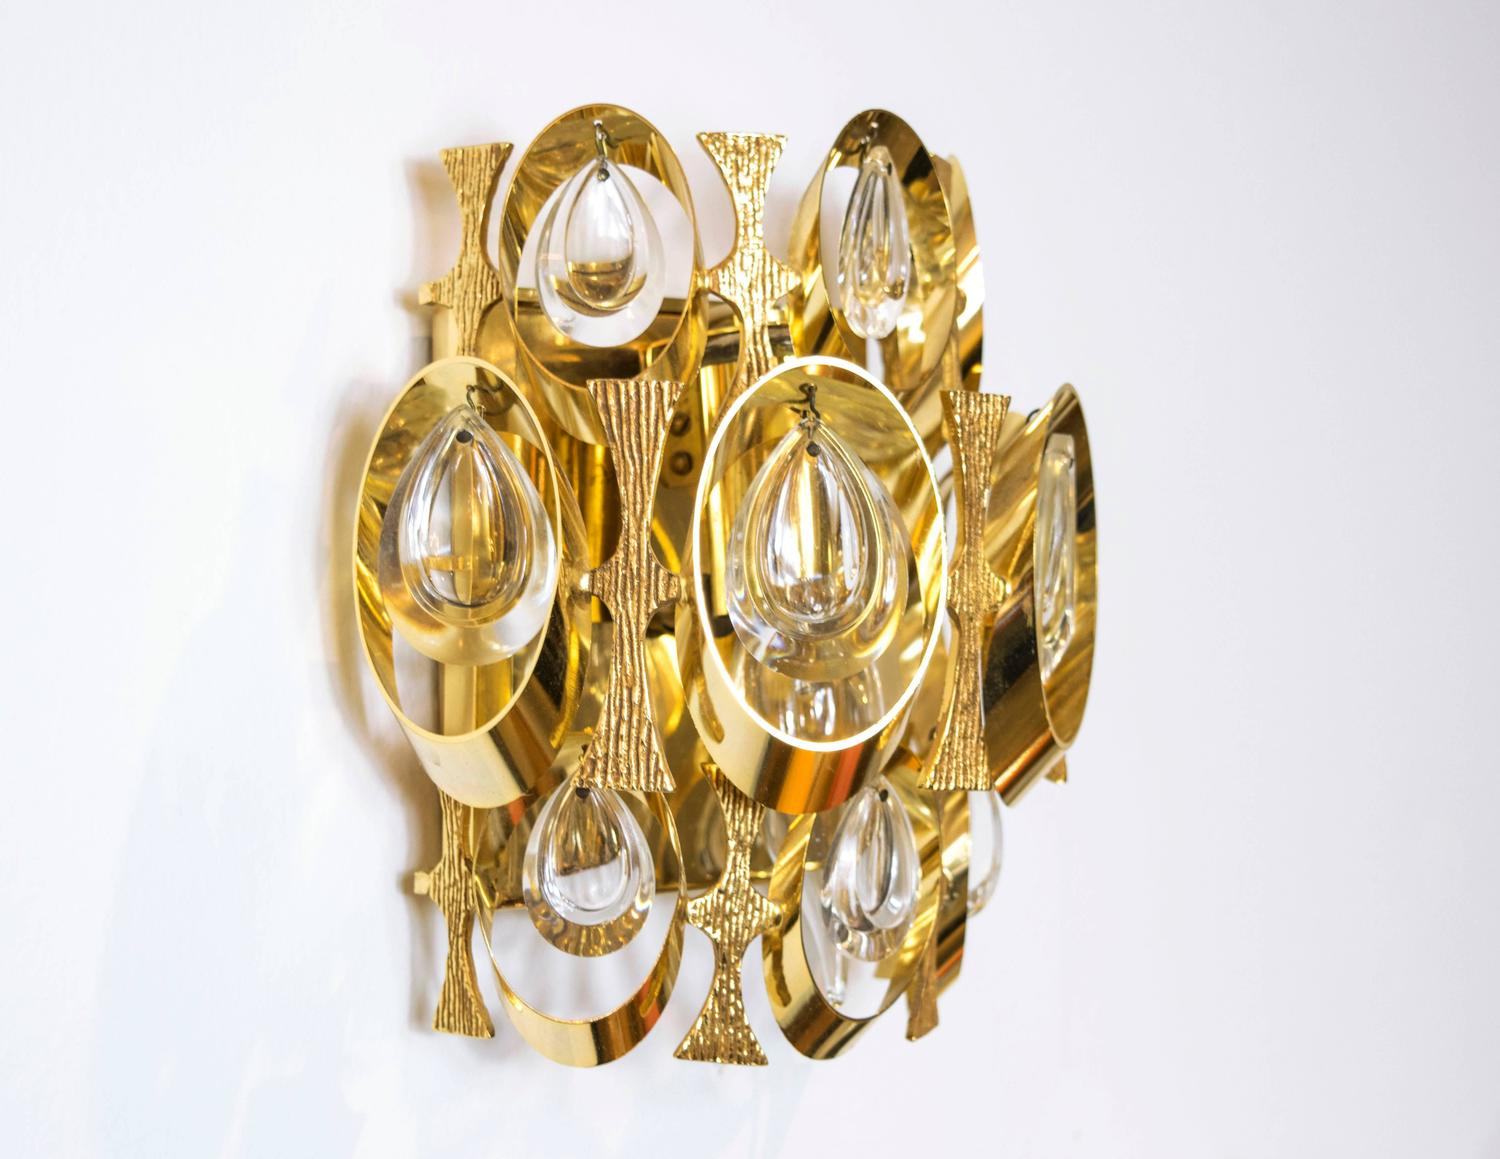 Sciolari Crystal and Gold-Plated Sculptural Wall Sconce For Sale at 1stdibs